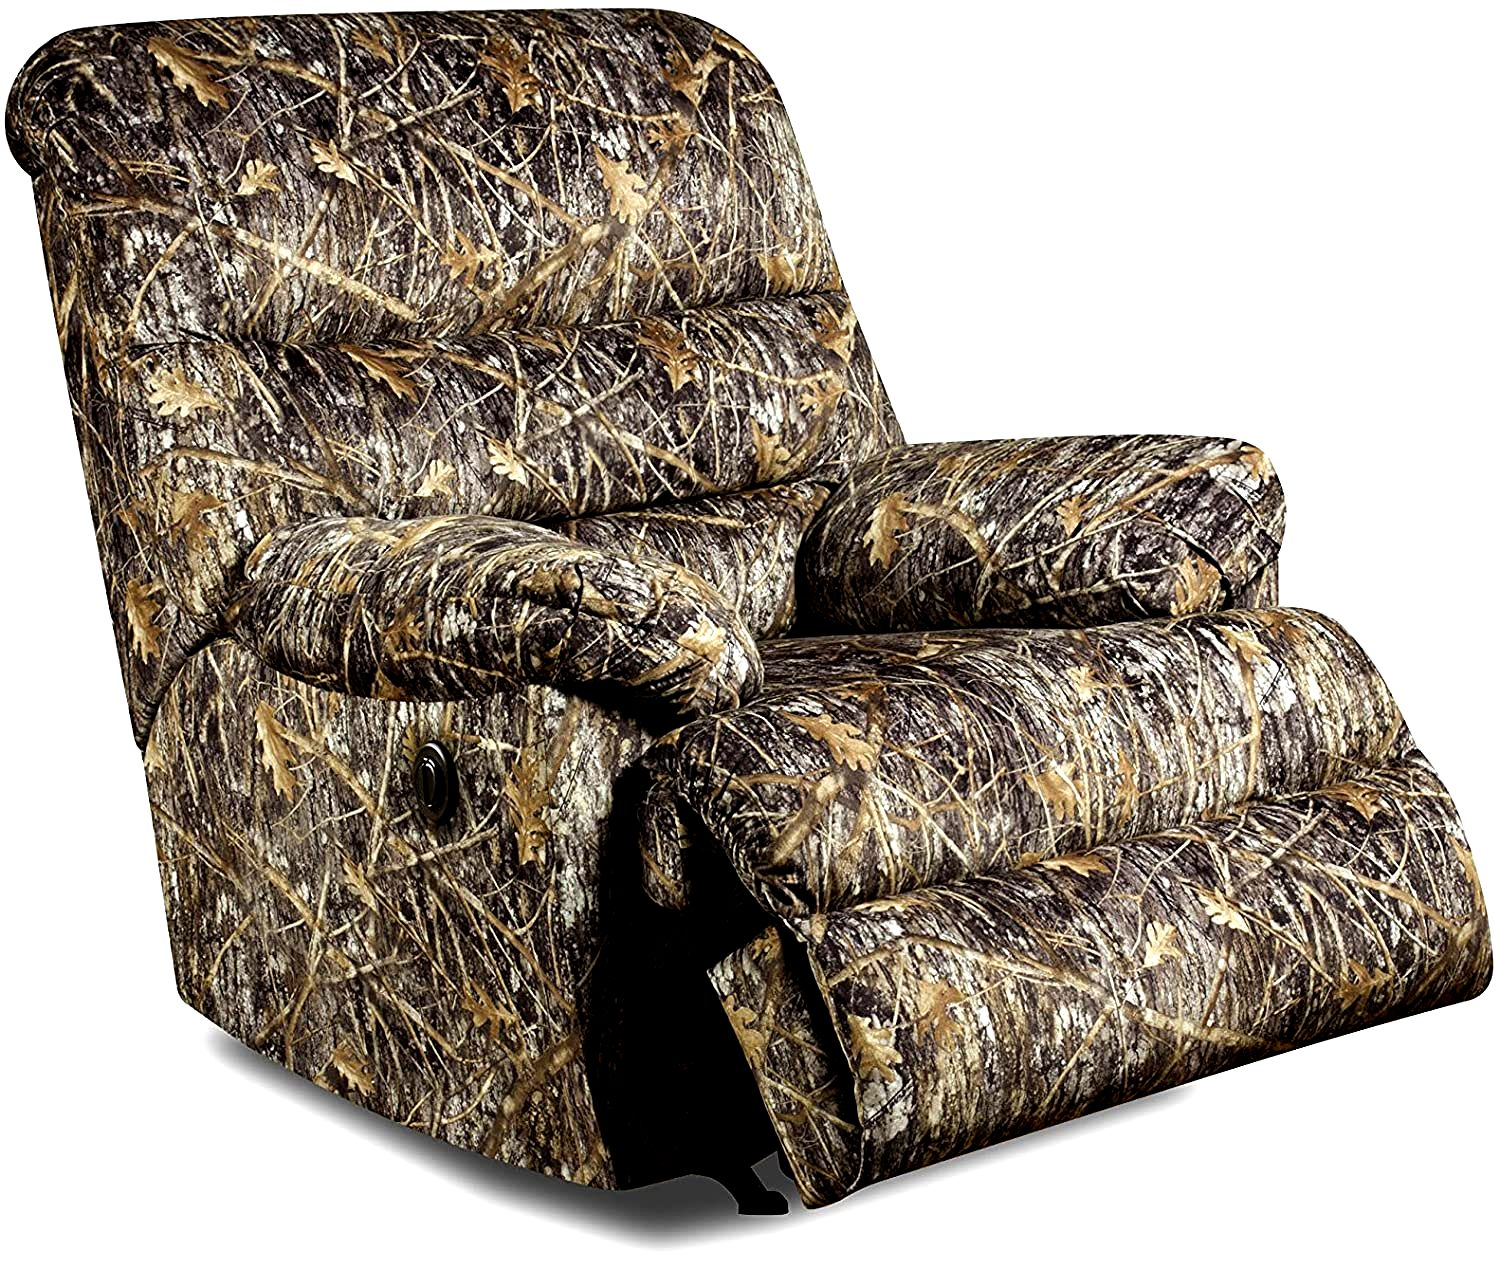 Simmons Upholstery Conceal Camo